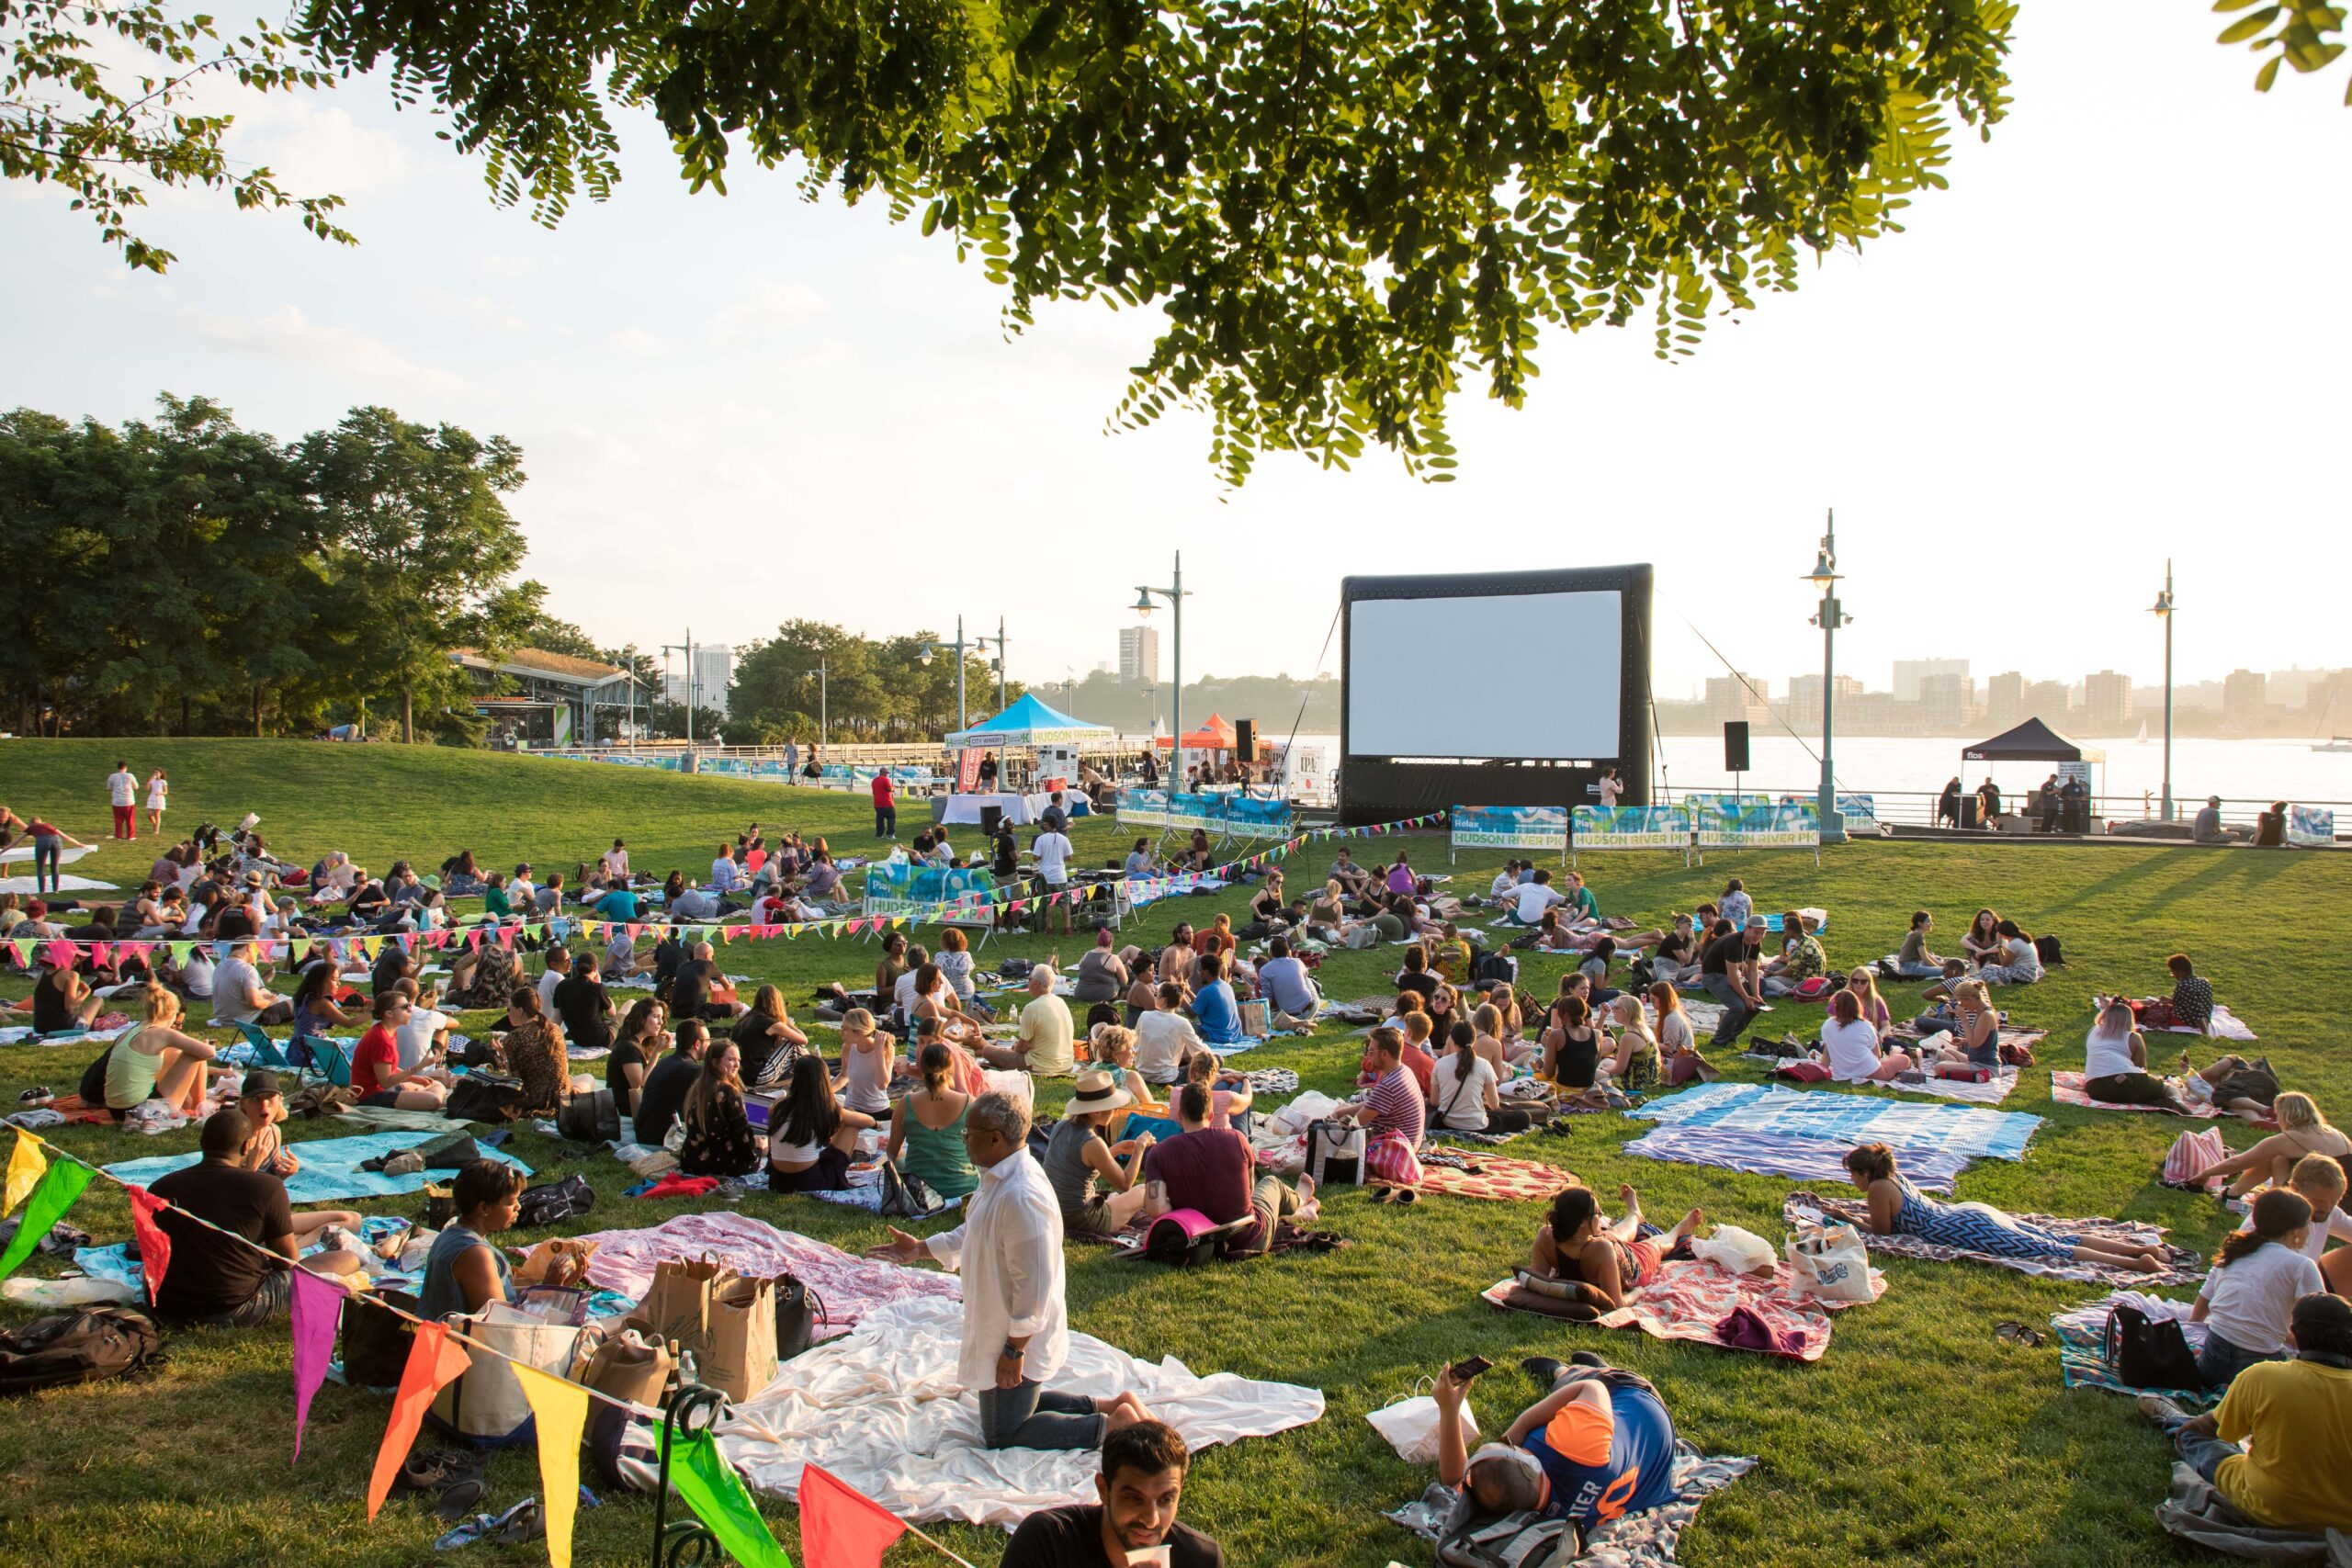 New York audiences spread blankets on Pier 63 in preparation for an evening of Hudson Riverflicks